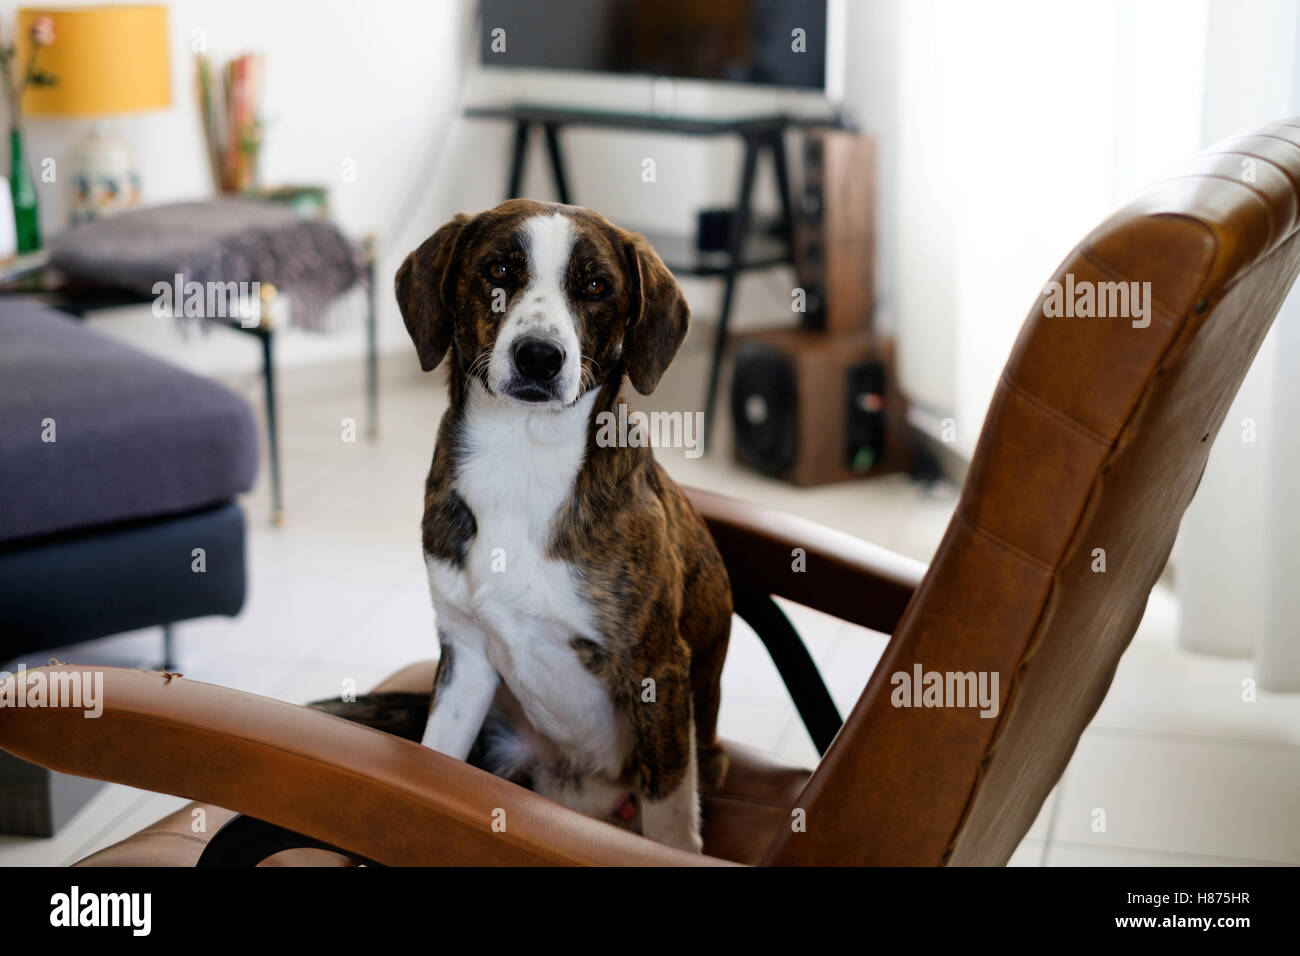 Lovely dog left alone ready for messing up home - Stock Image